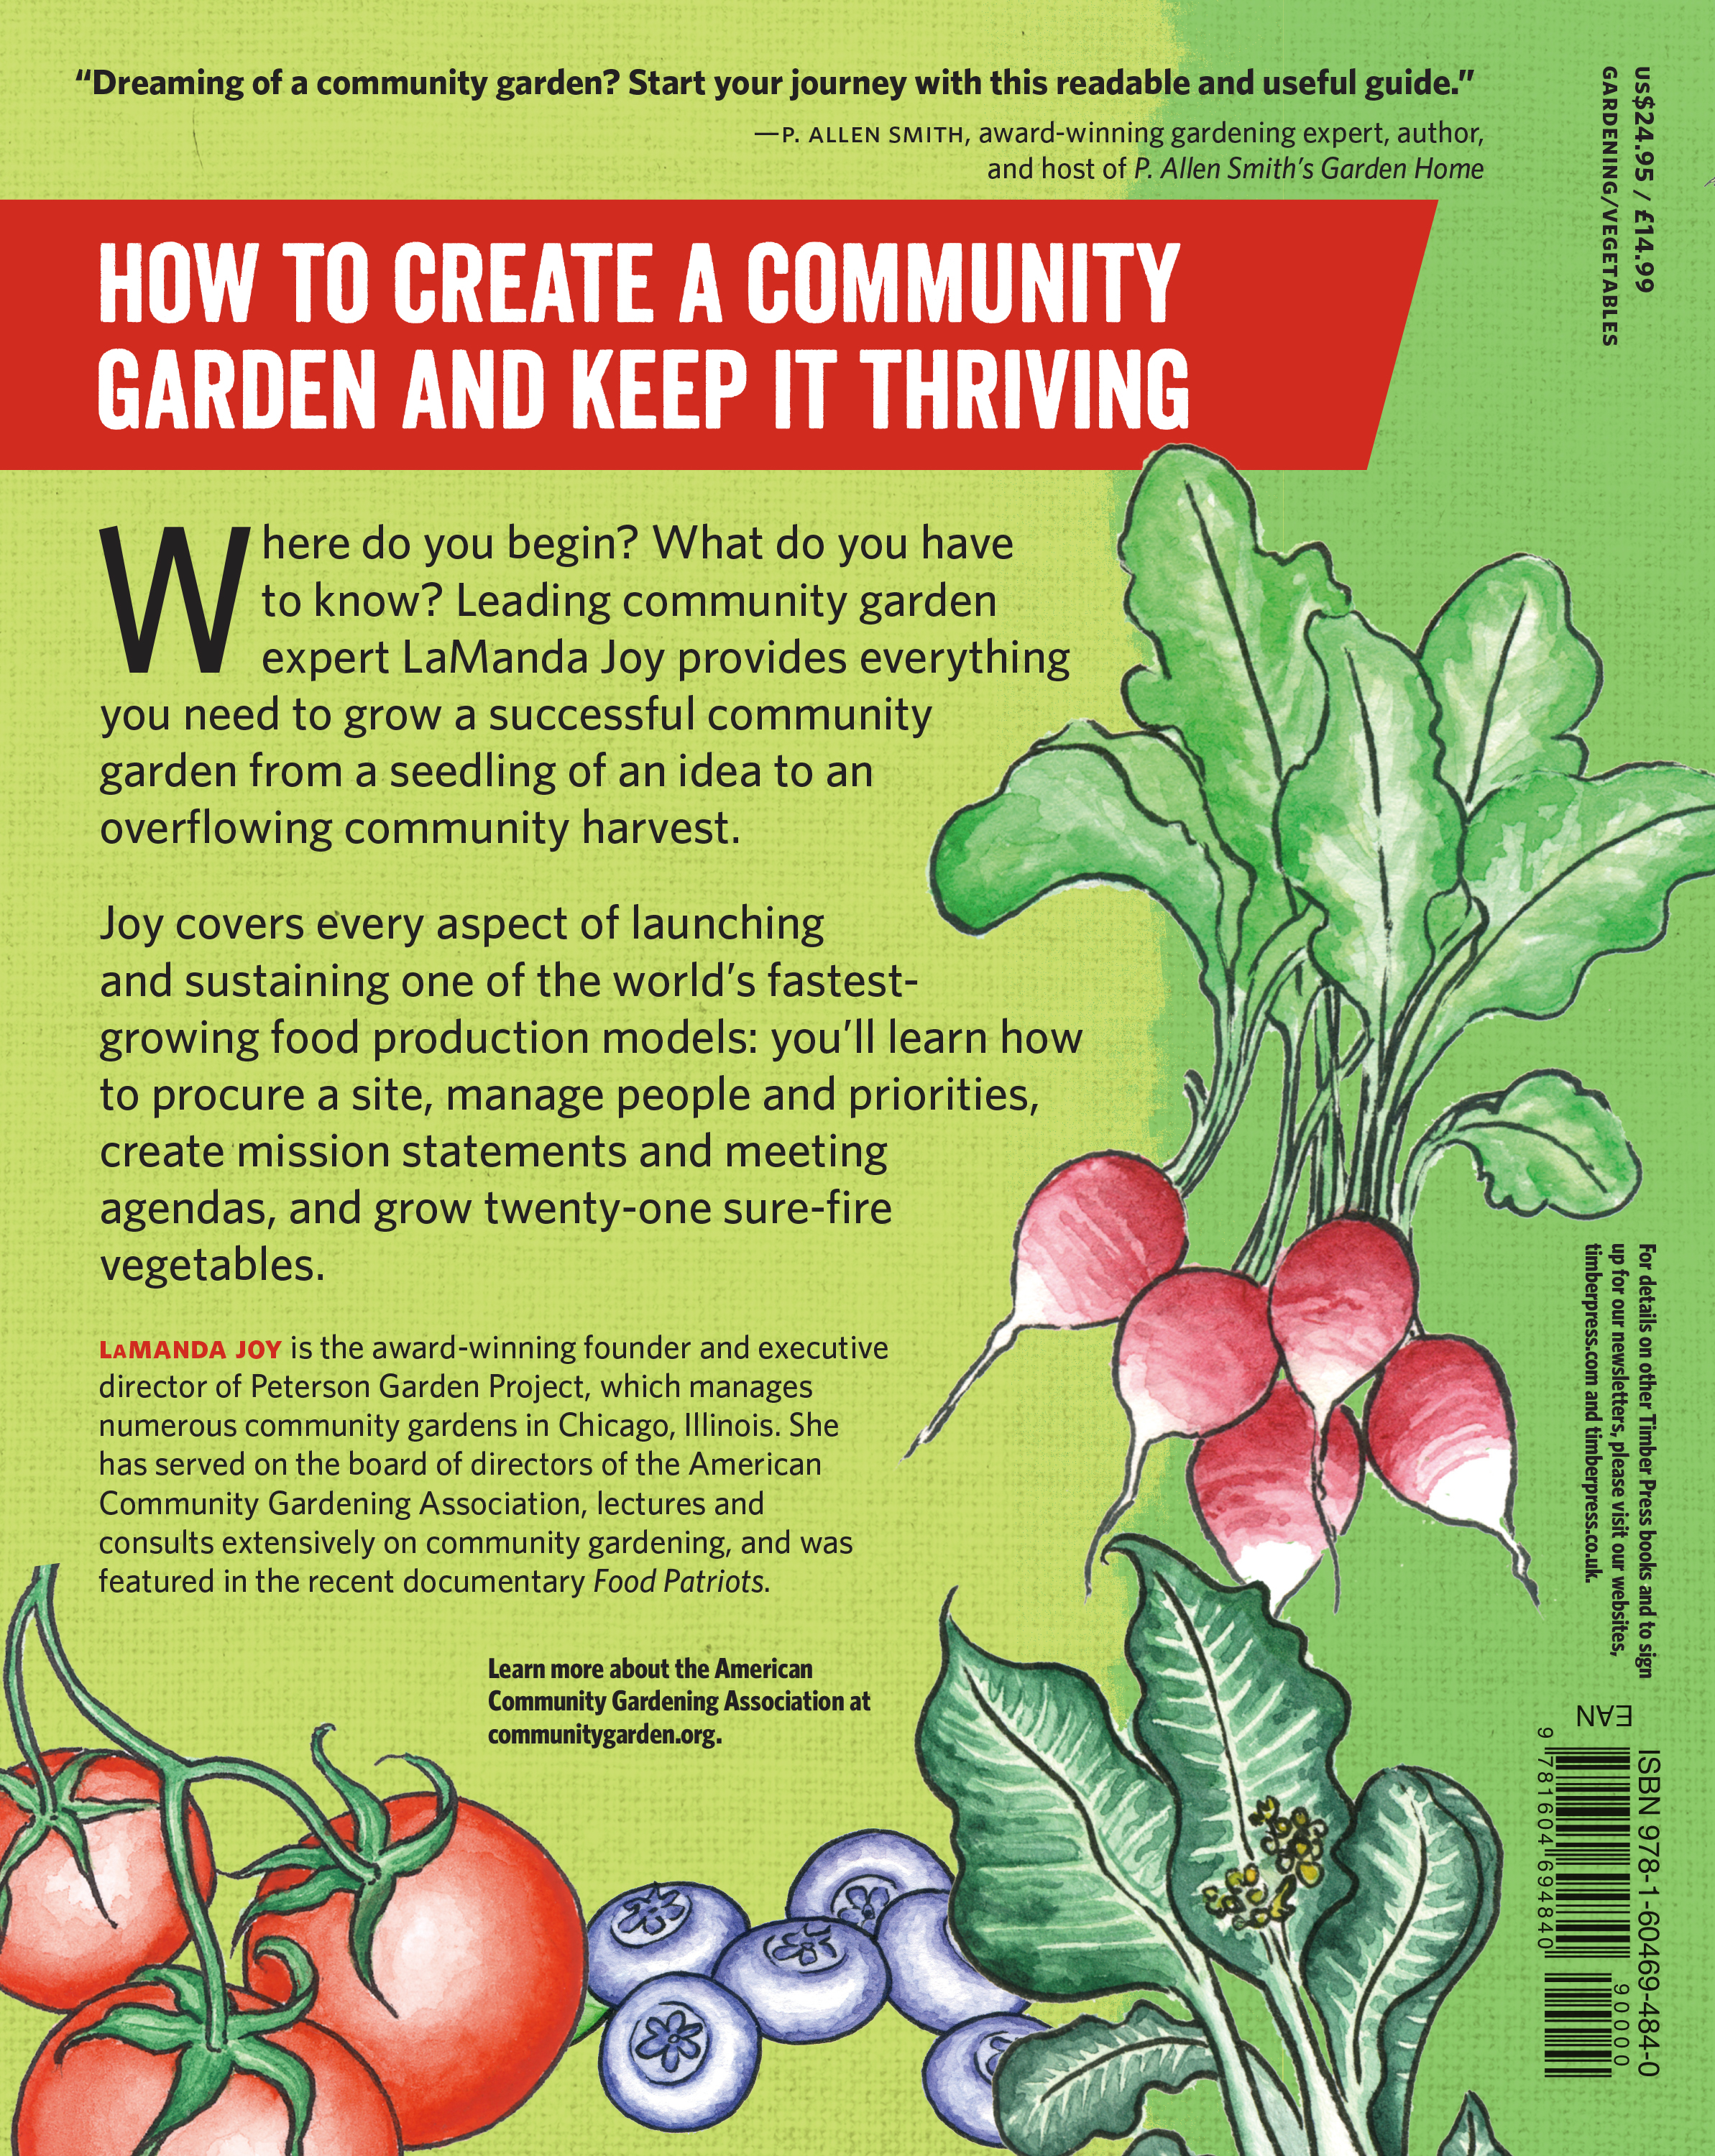 view full size image - How To Start A Community Garden